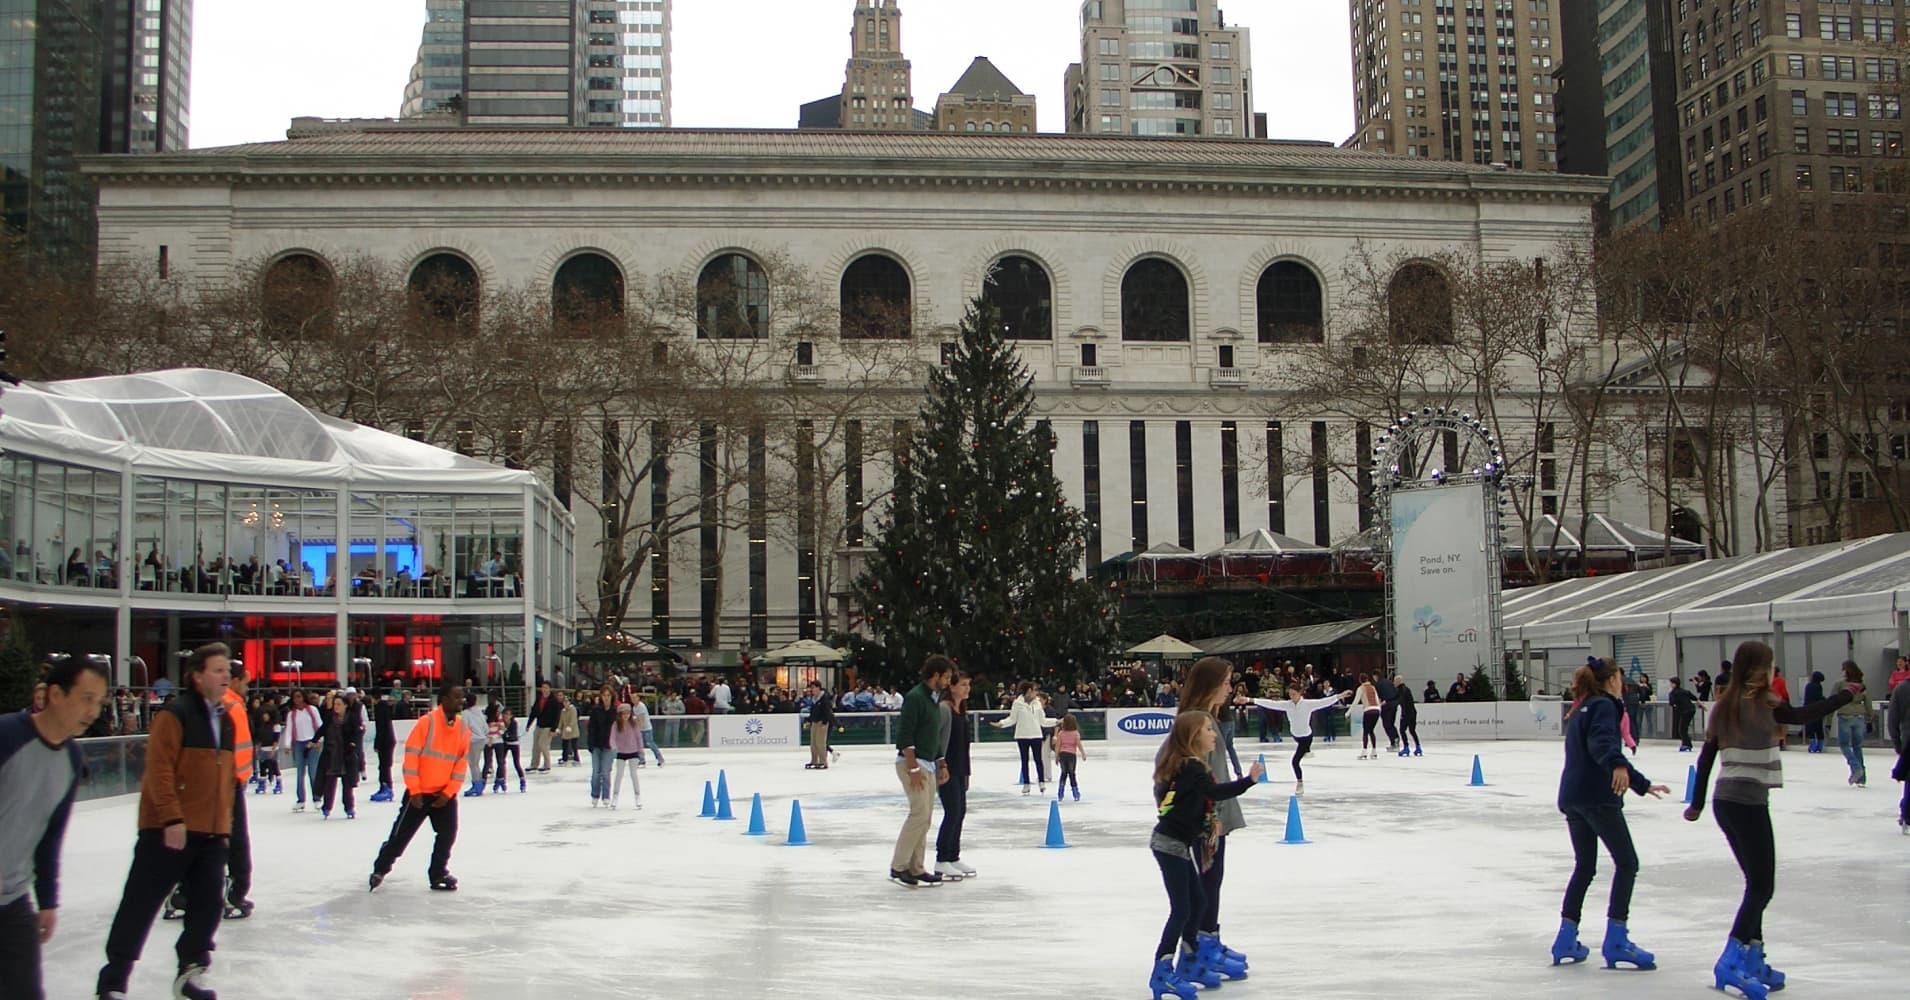 If you bring your own skates, ice skating at Bryant Park is completely free